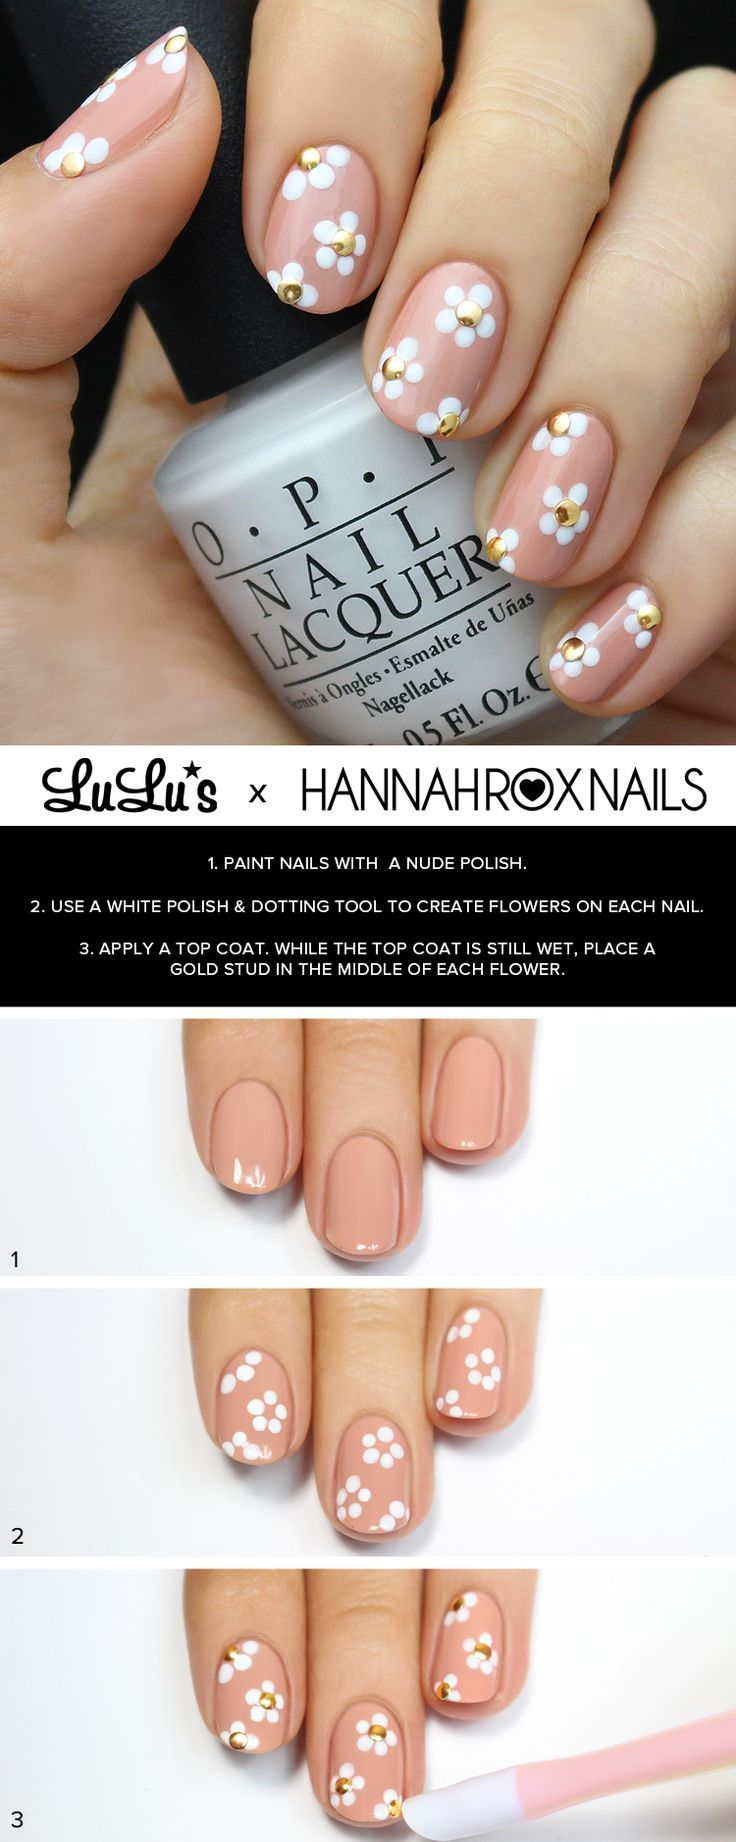 Flower nail art tutorial.